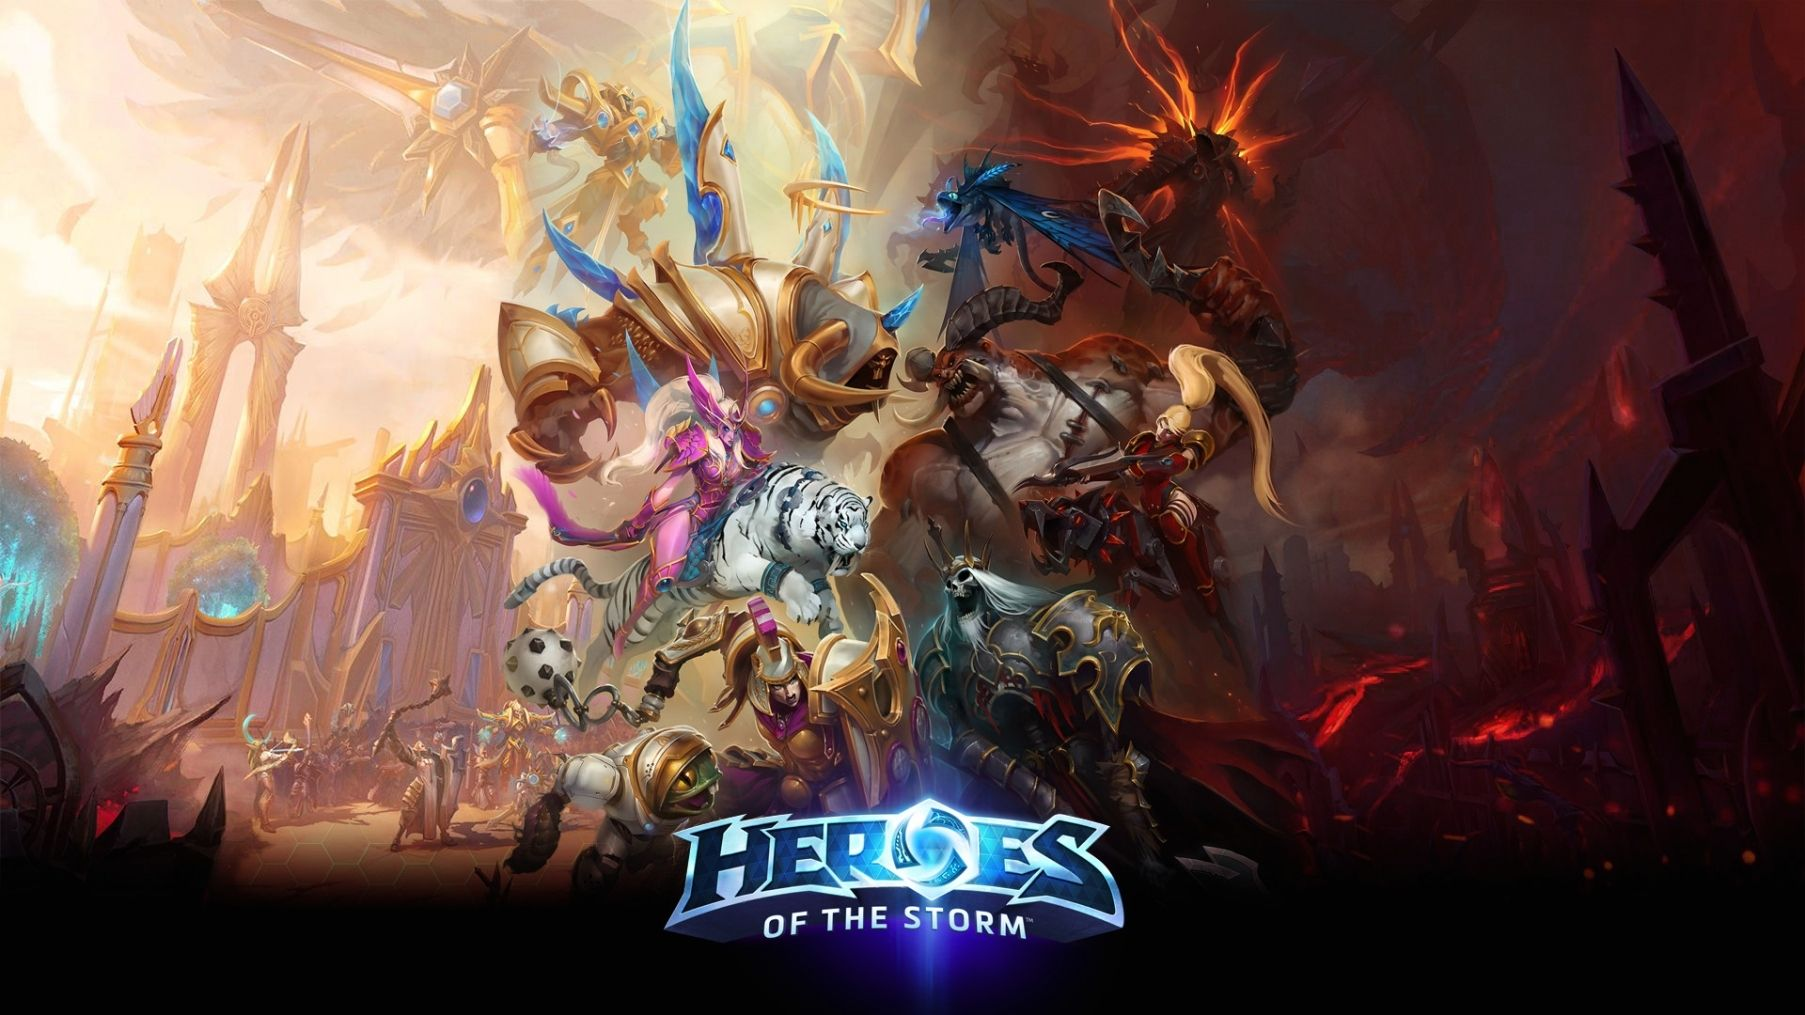 Beautiful Heroes Of The Storm Wallpaper Heroes Of The Storm